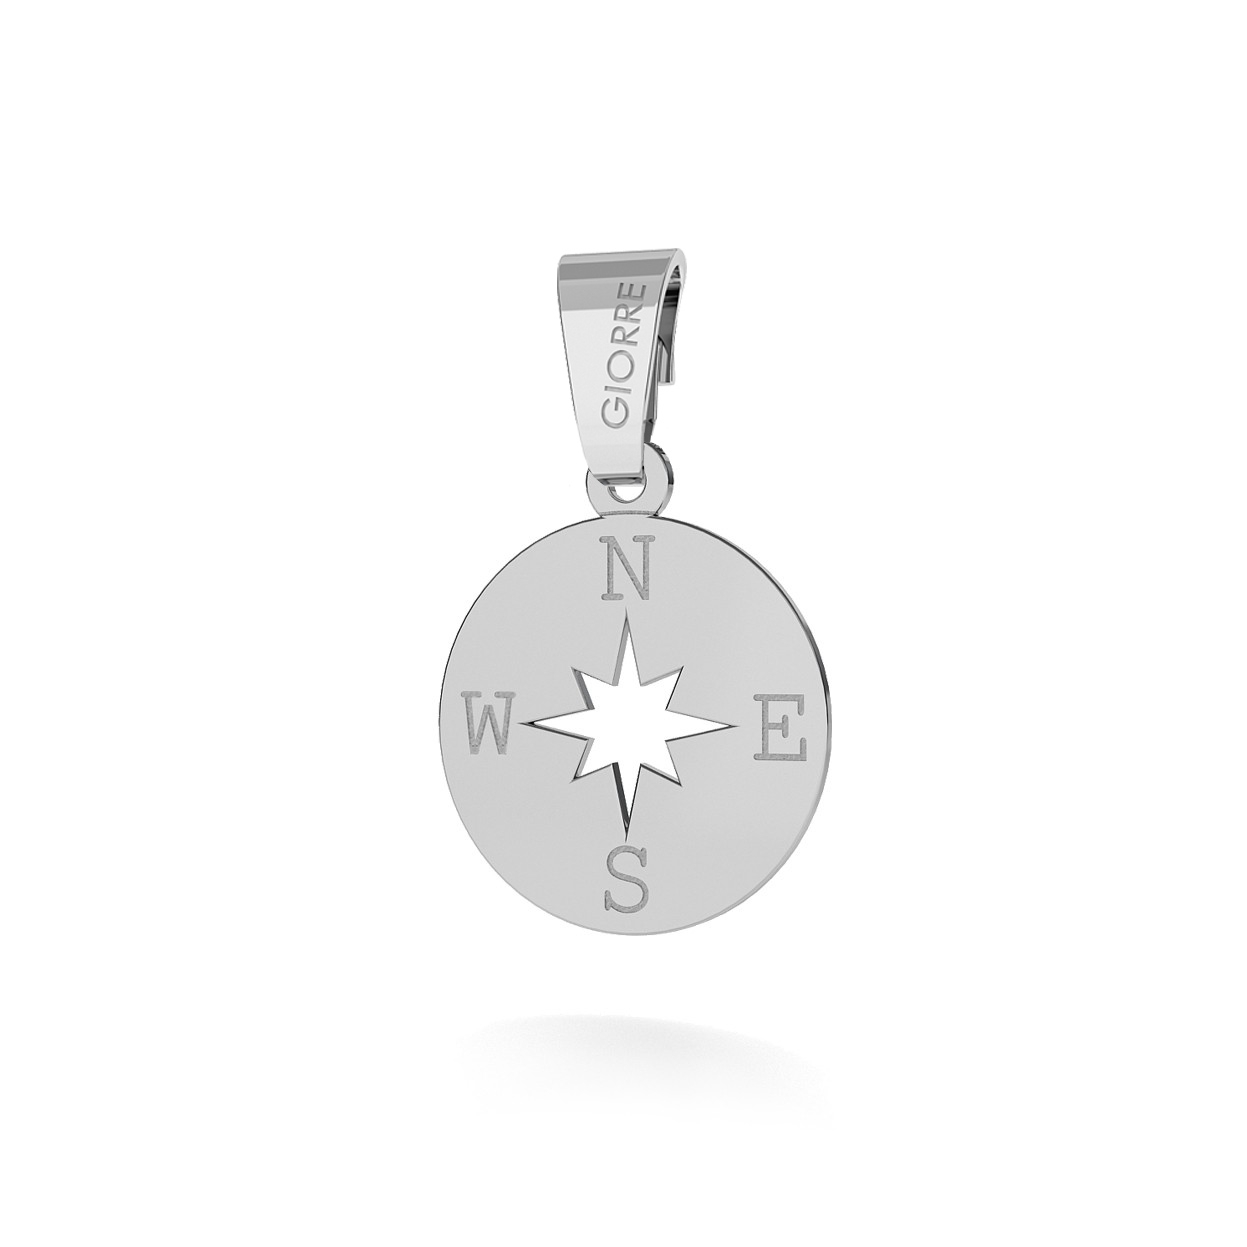 CHARM 63, WIND ROSE, SILVER 925,  RHODIUM OR GOLD PLATED